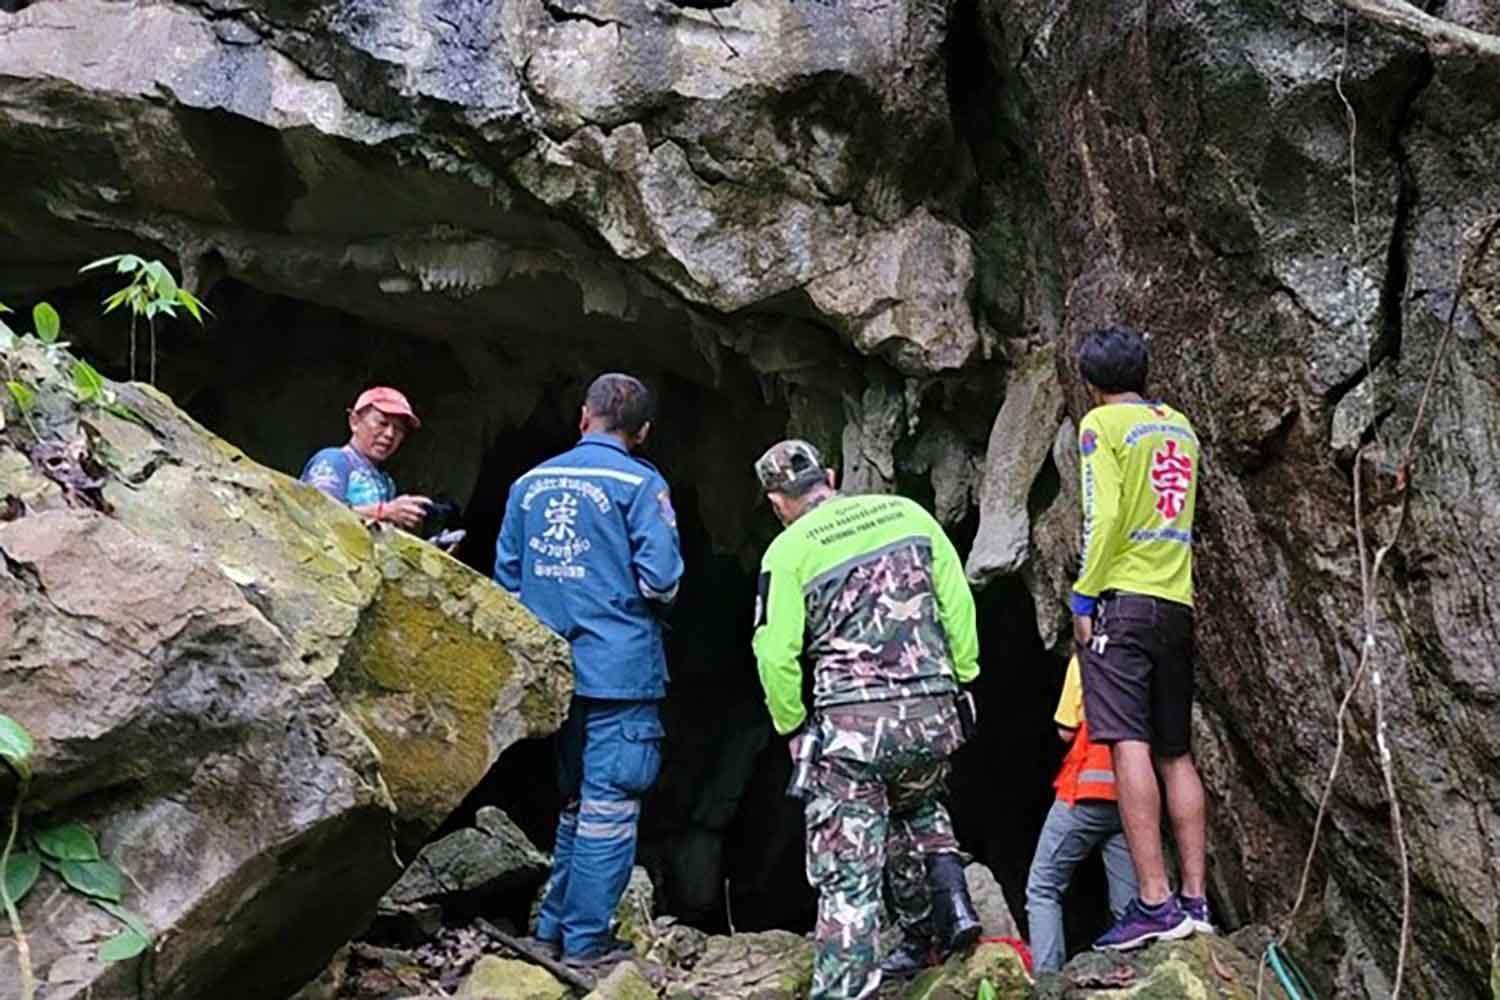 Rescue workers gather at Phra Sai Ngam cave in Noen Maprang district of Phitsanulok to prepare a rescue mission. (Photo: Chinawat Singhha)